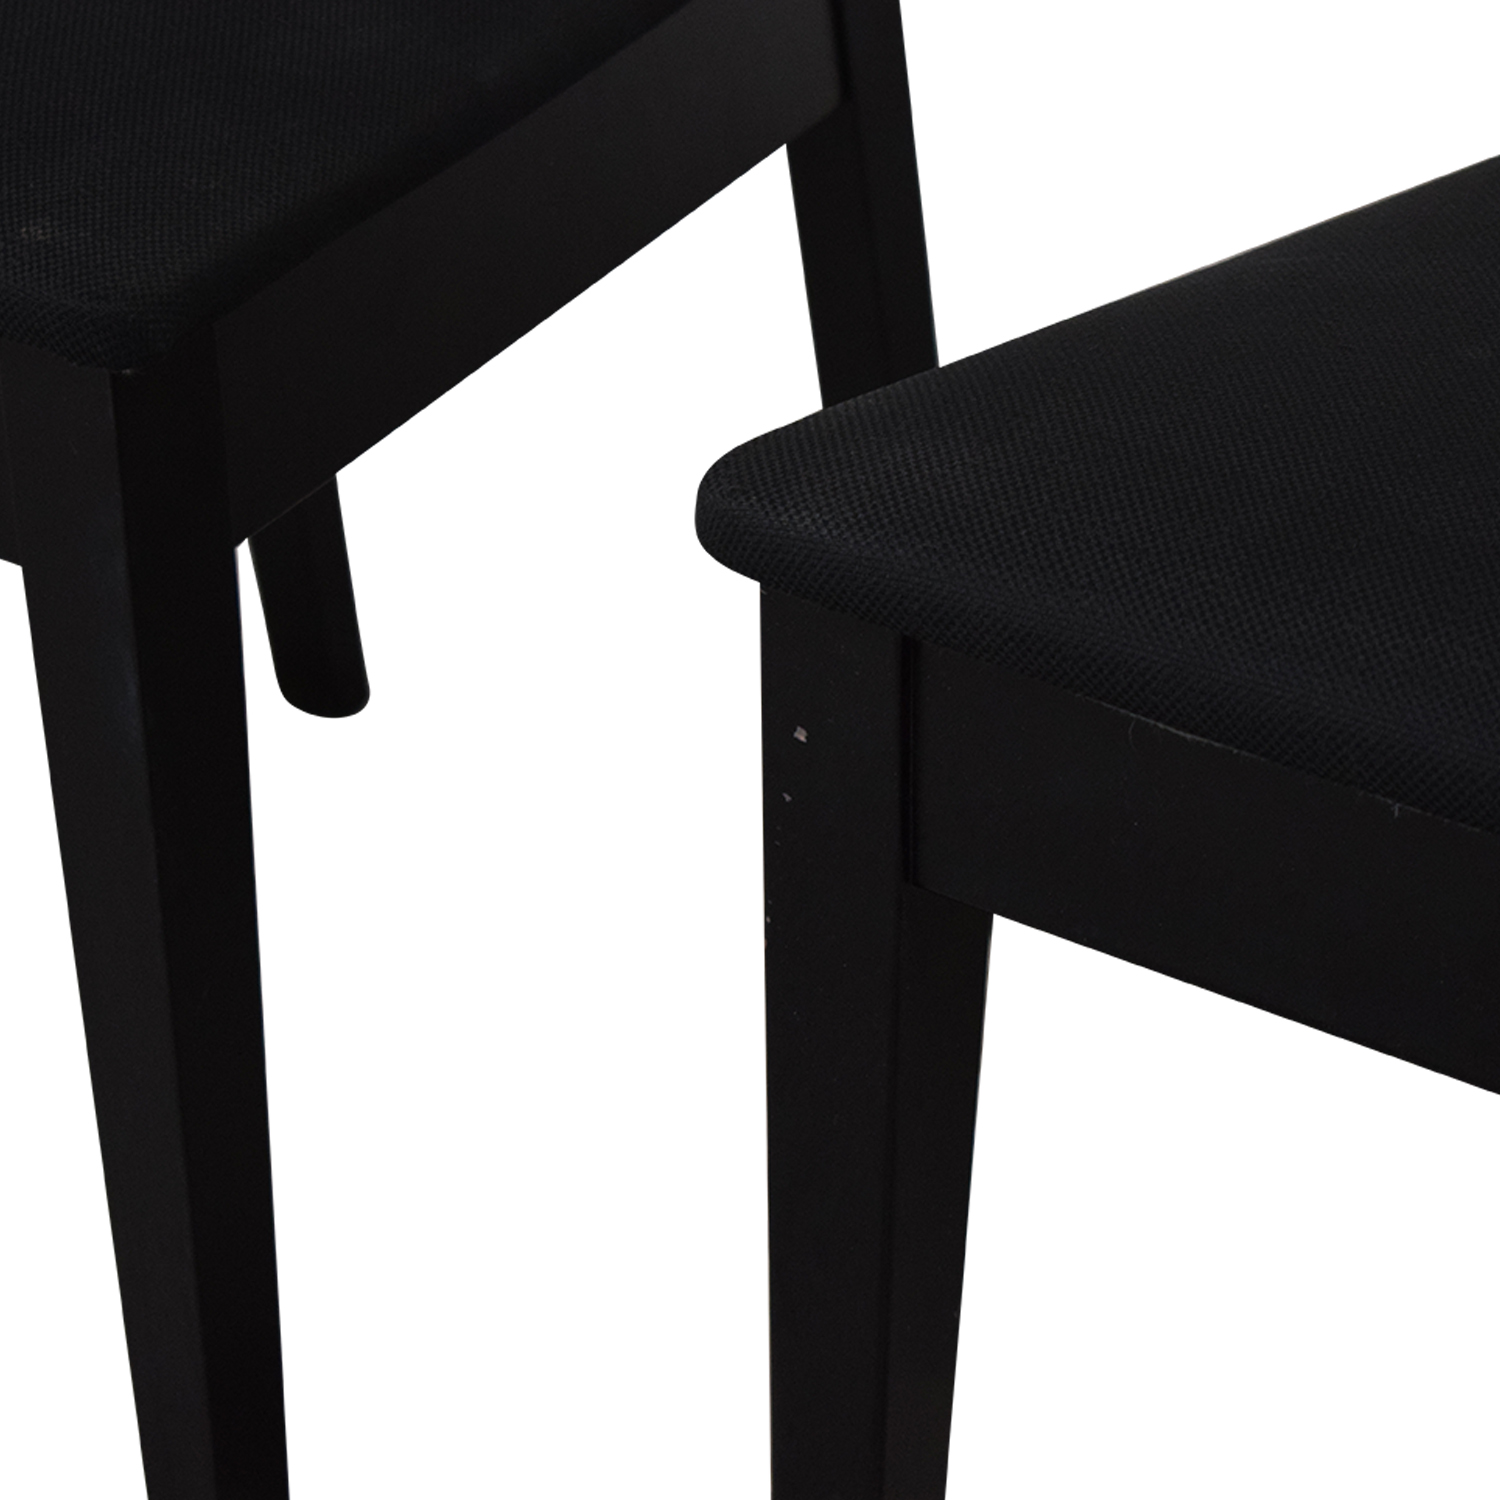 Calligaris Calligaris Upholstered Dining Chairs Chairs